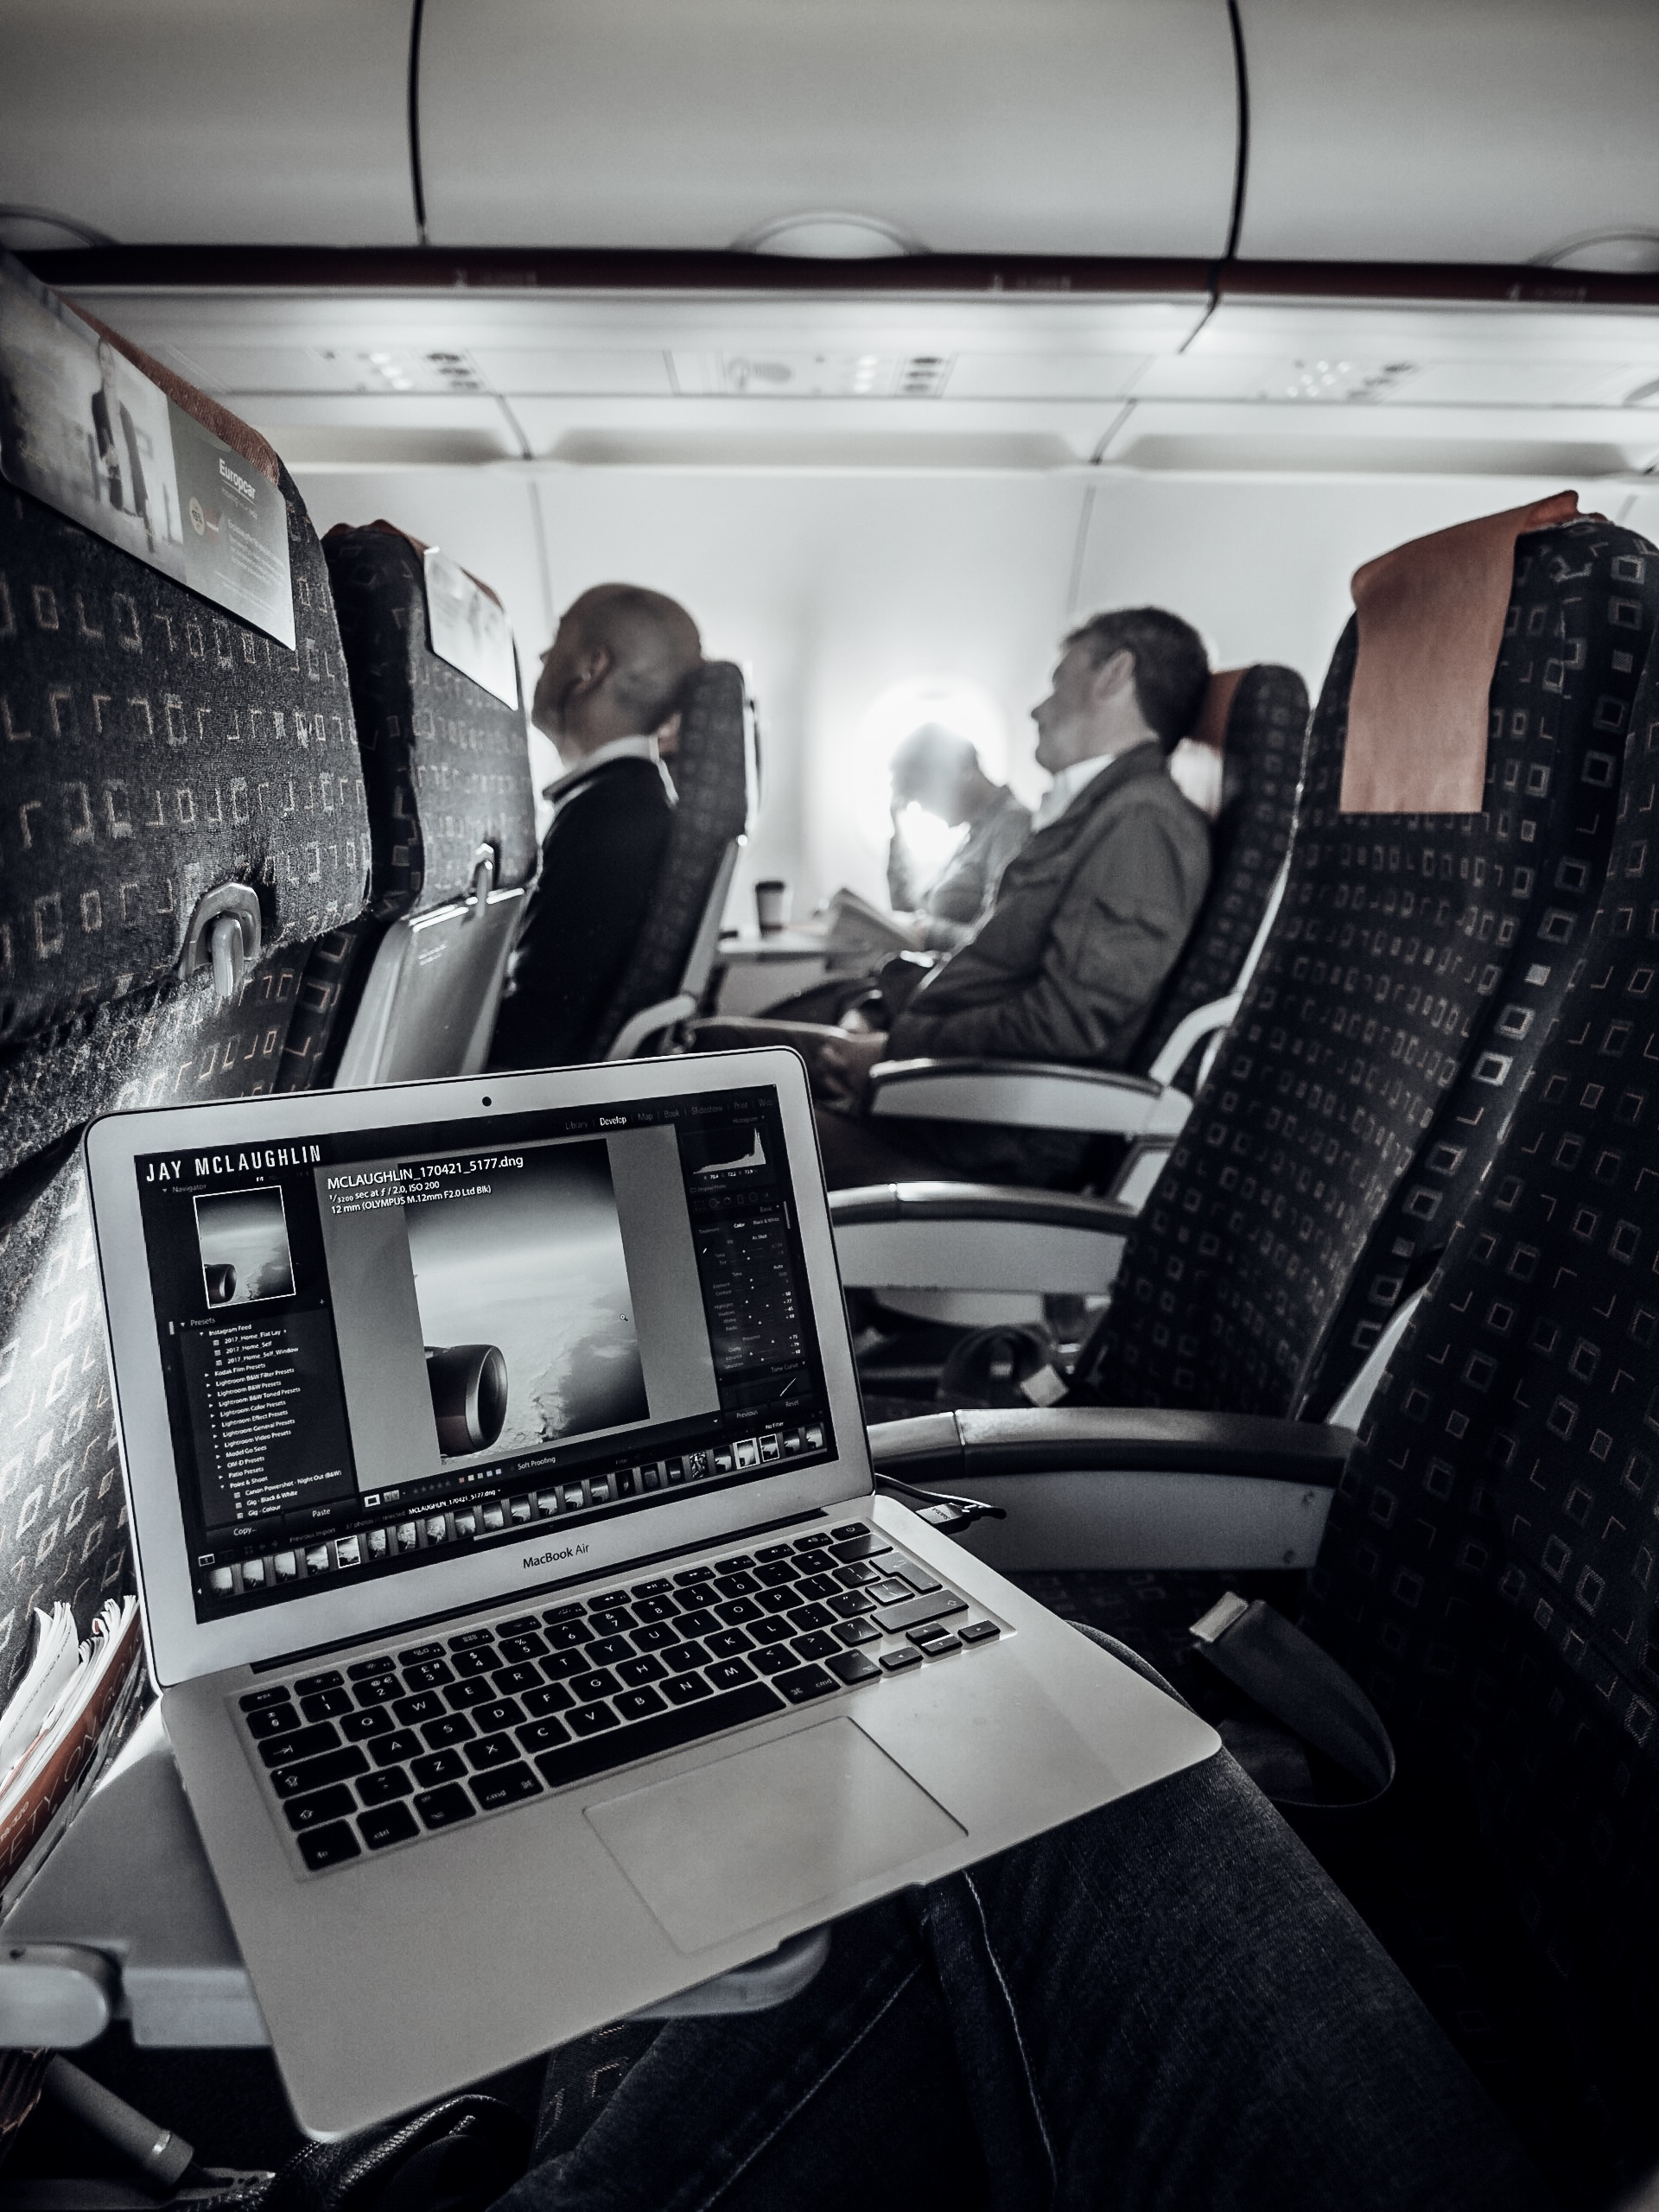 Olympus PEN 12mm f/2.0 Lens Wide Angle Editing Flight Travel Airplane Aeroplane Plane EasyJet Laptop MacBook Air Adobe Lightroom Creative Cloud Photography